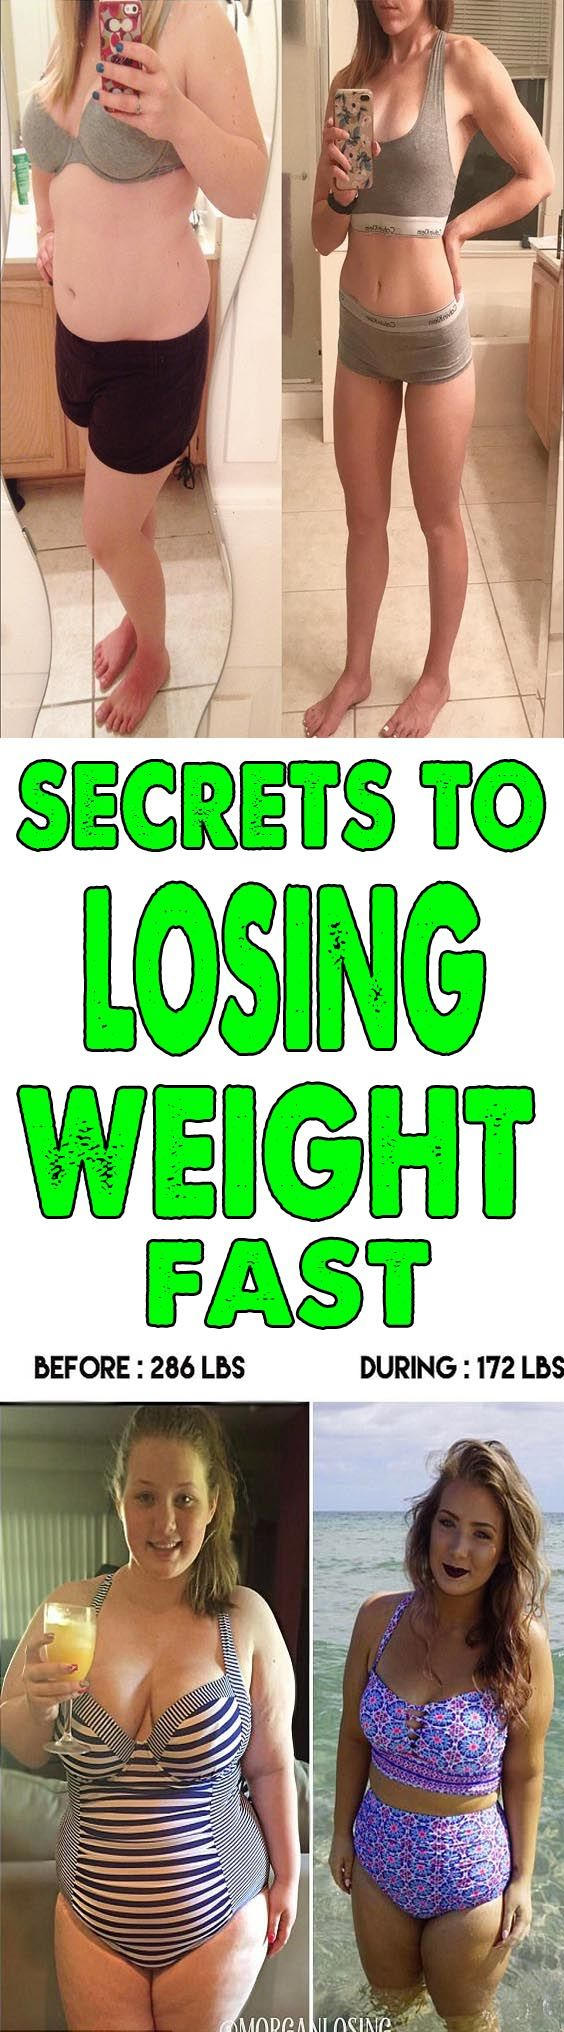 Fastest way to lose fat from hips picture 2